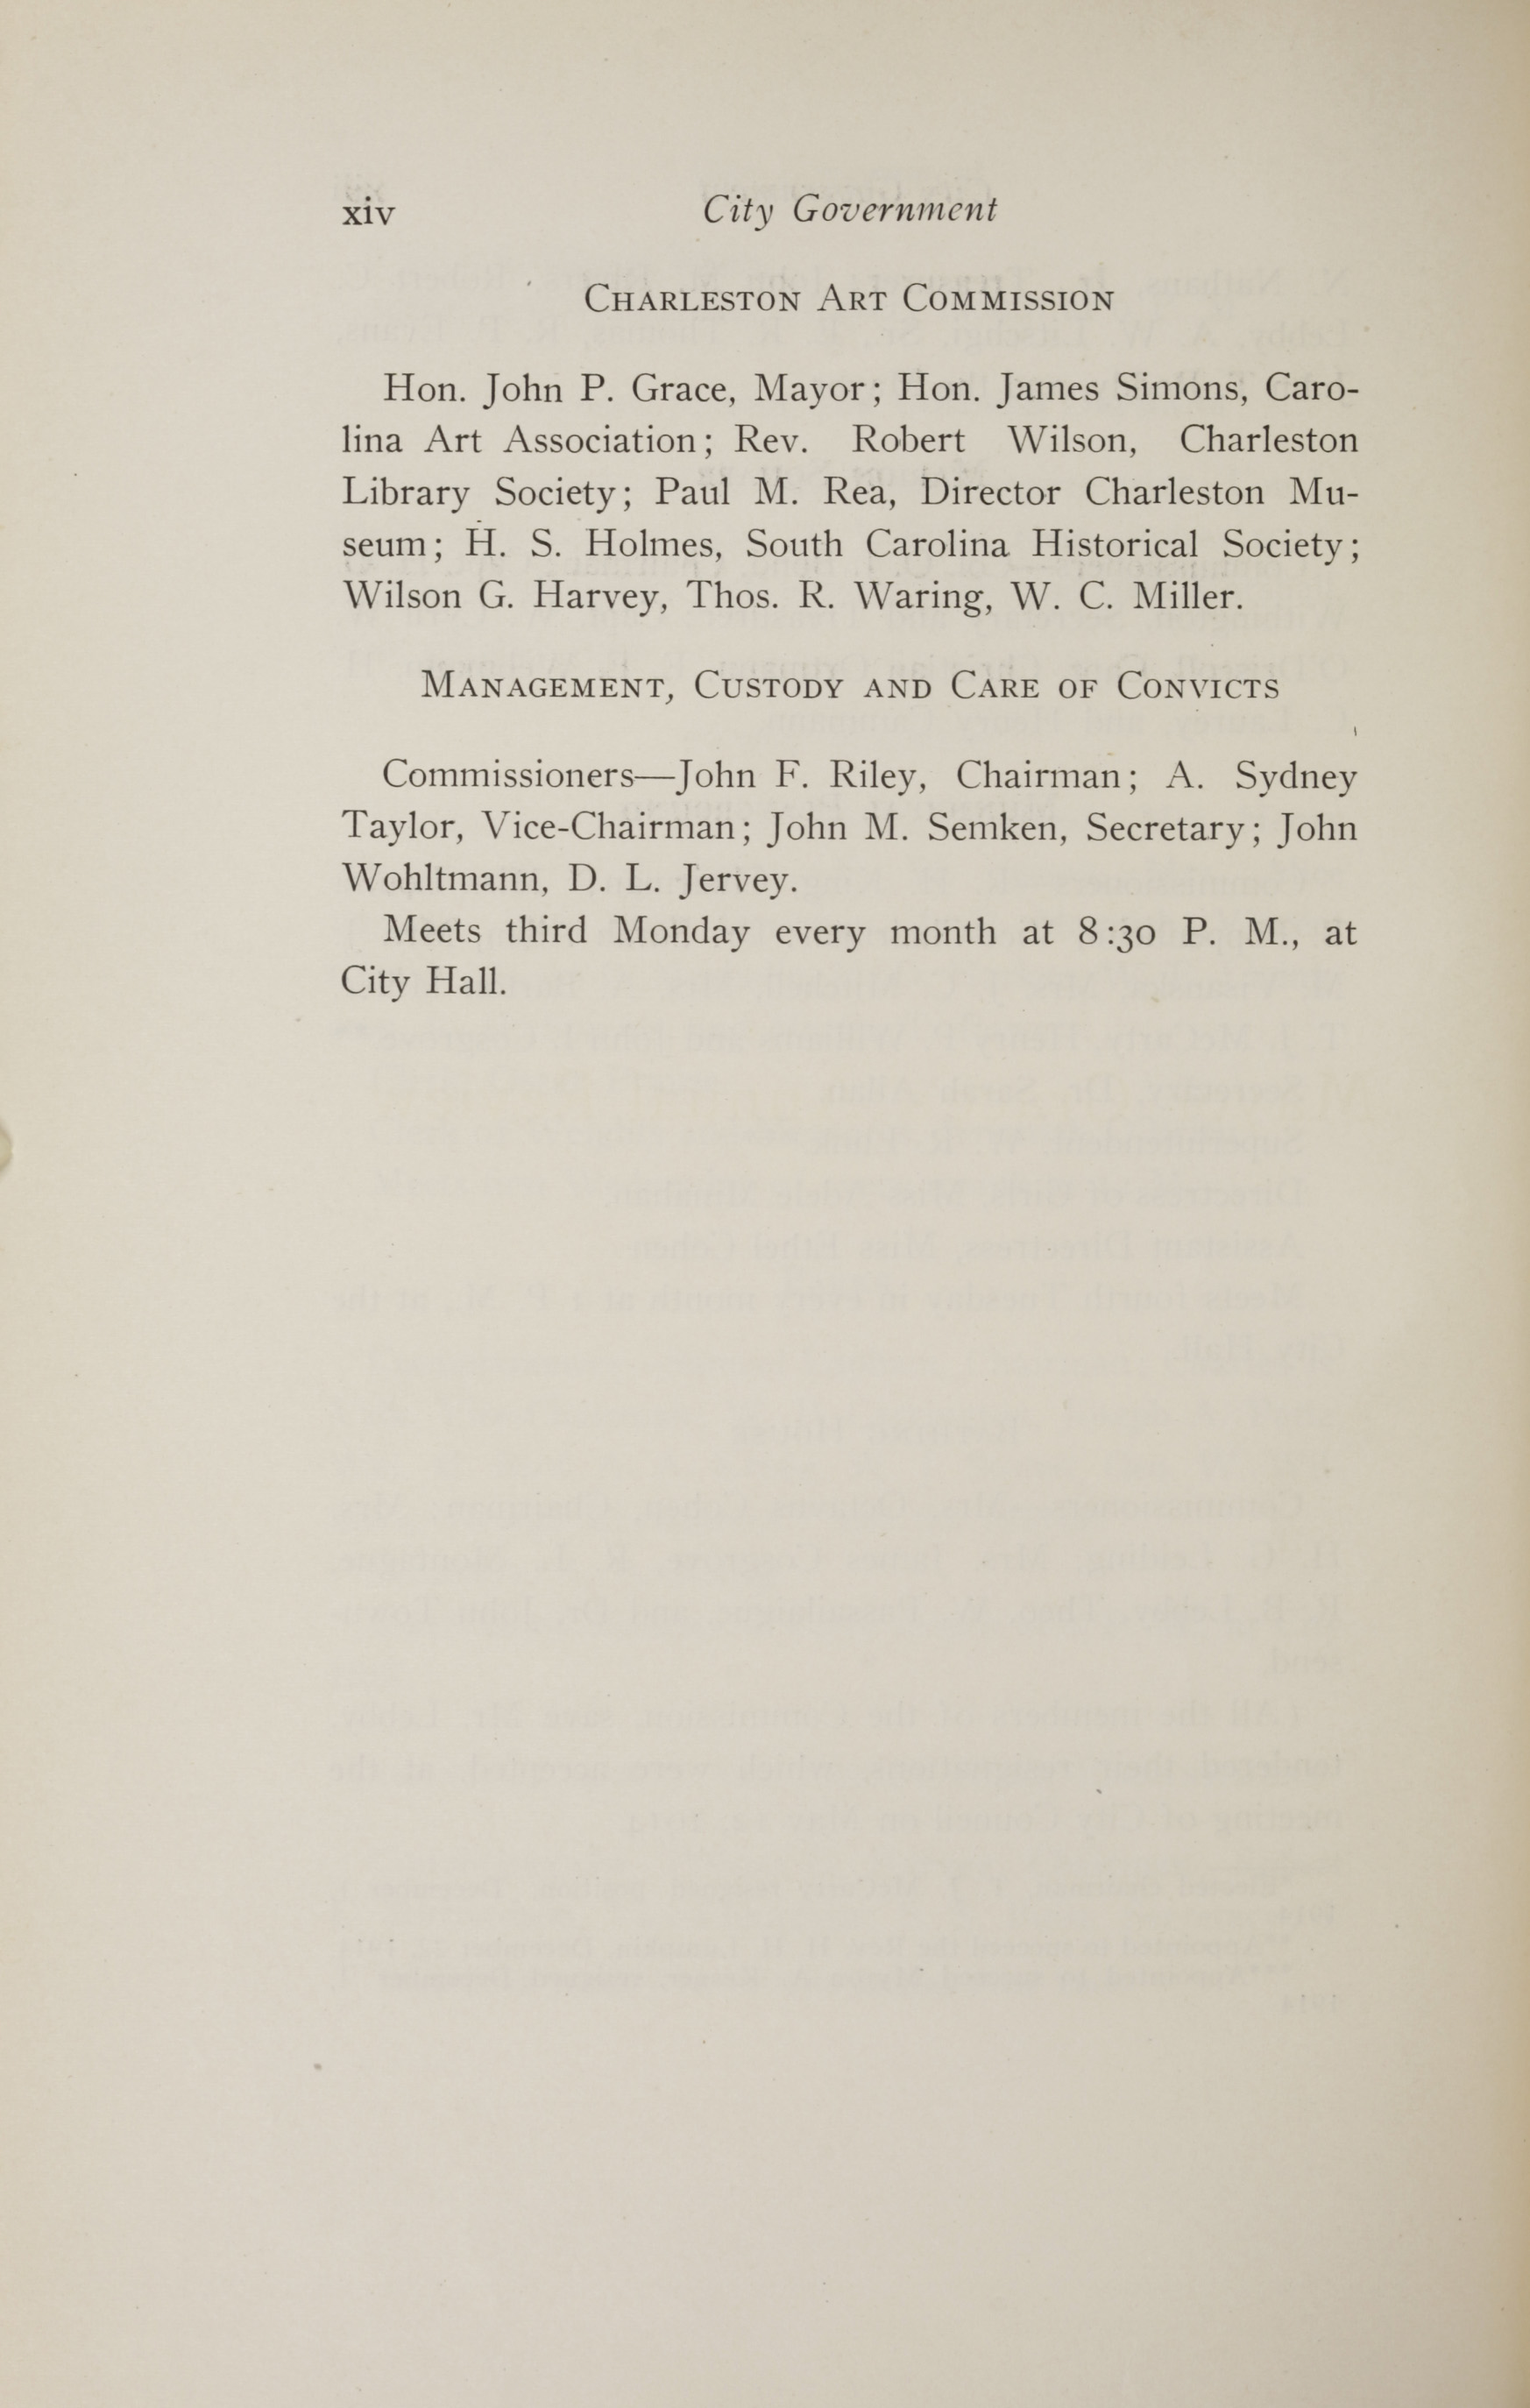 Charleston Yearbook, 1914, page xiv